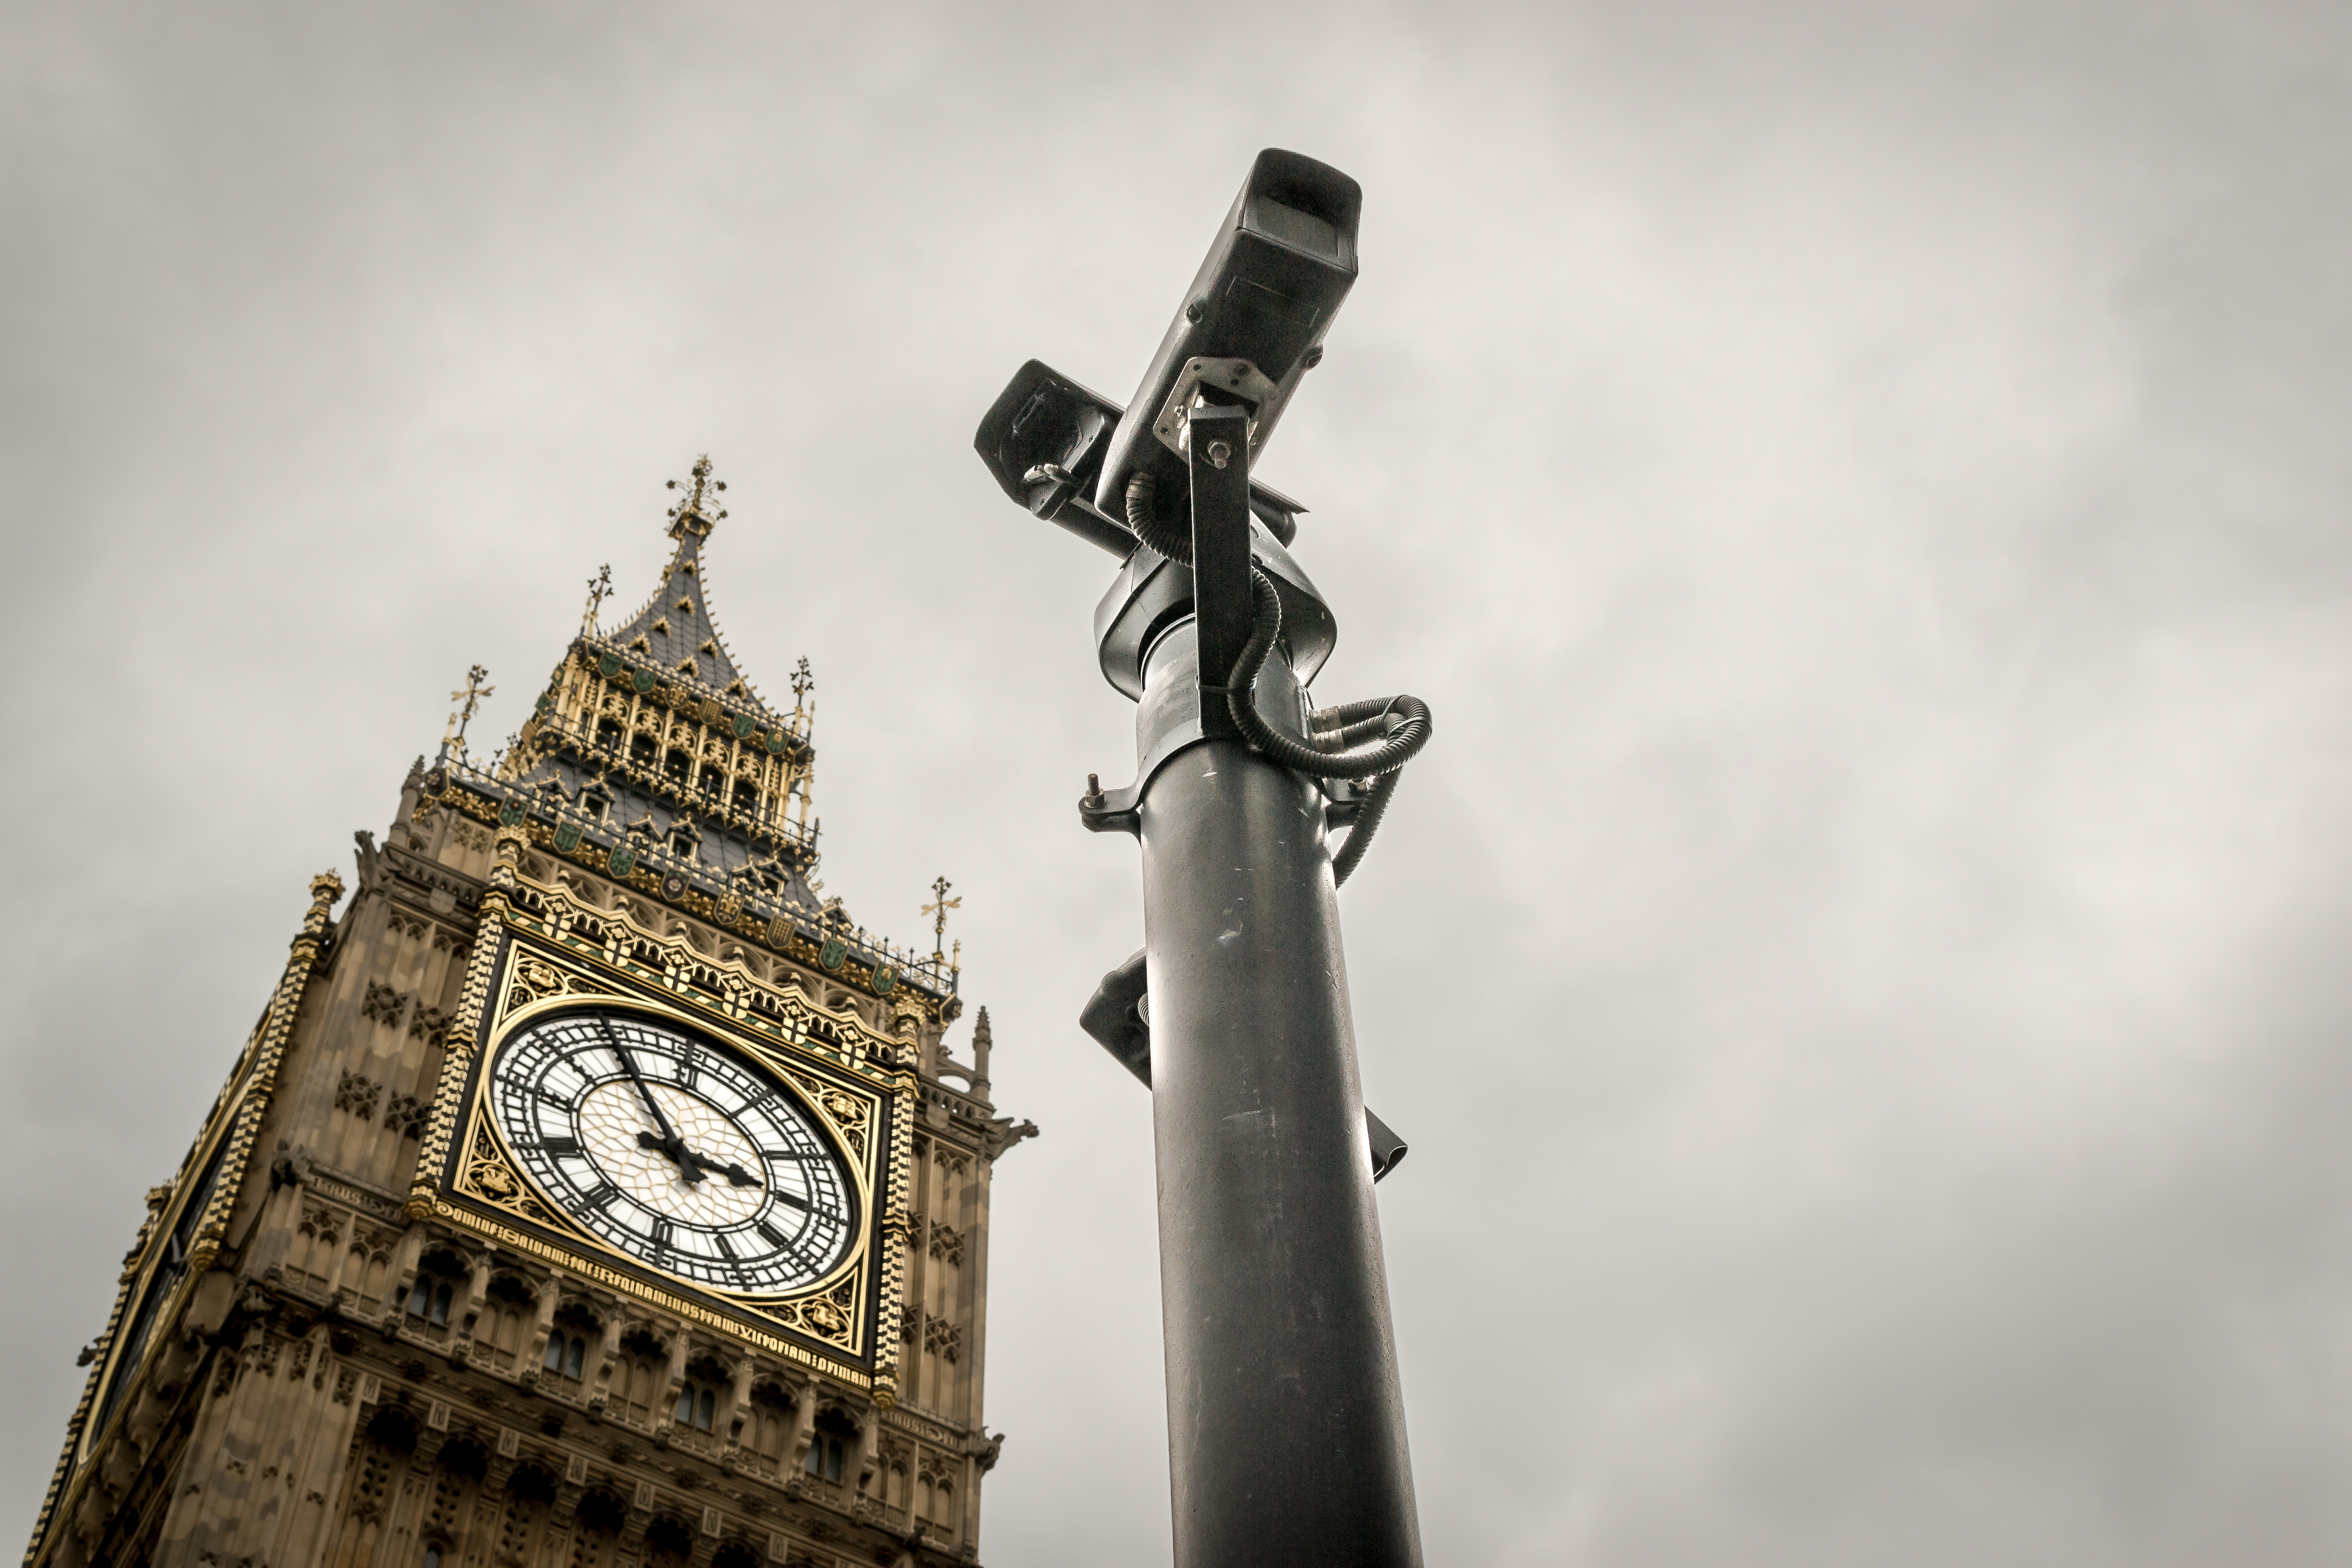 How Many Cctv Cameras In London